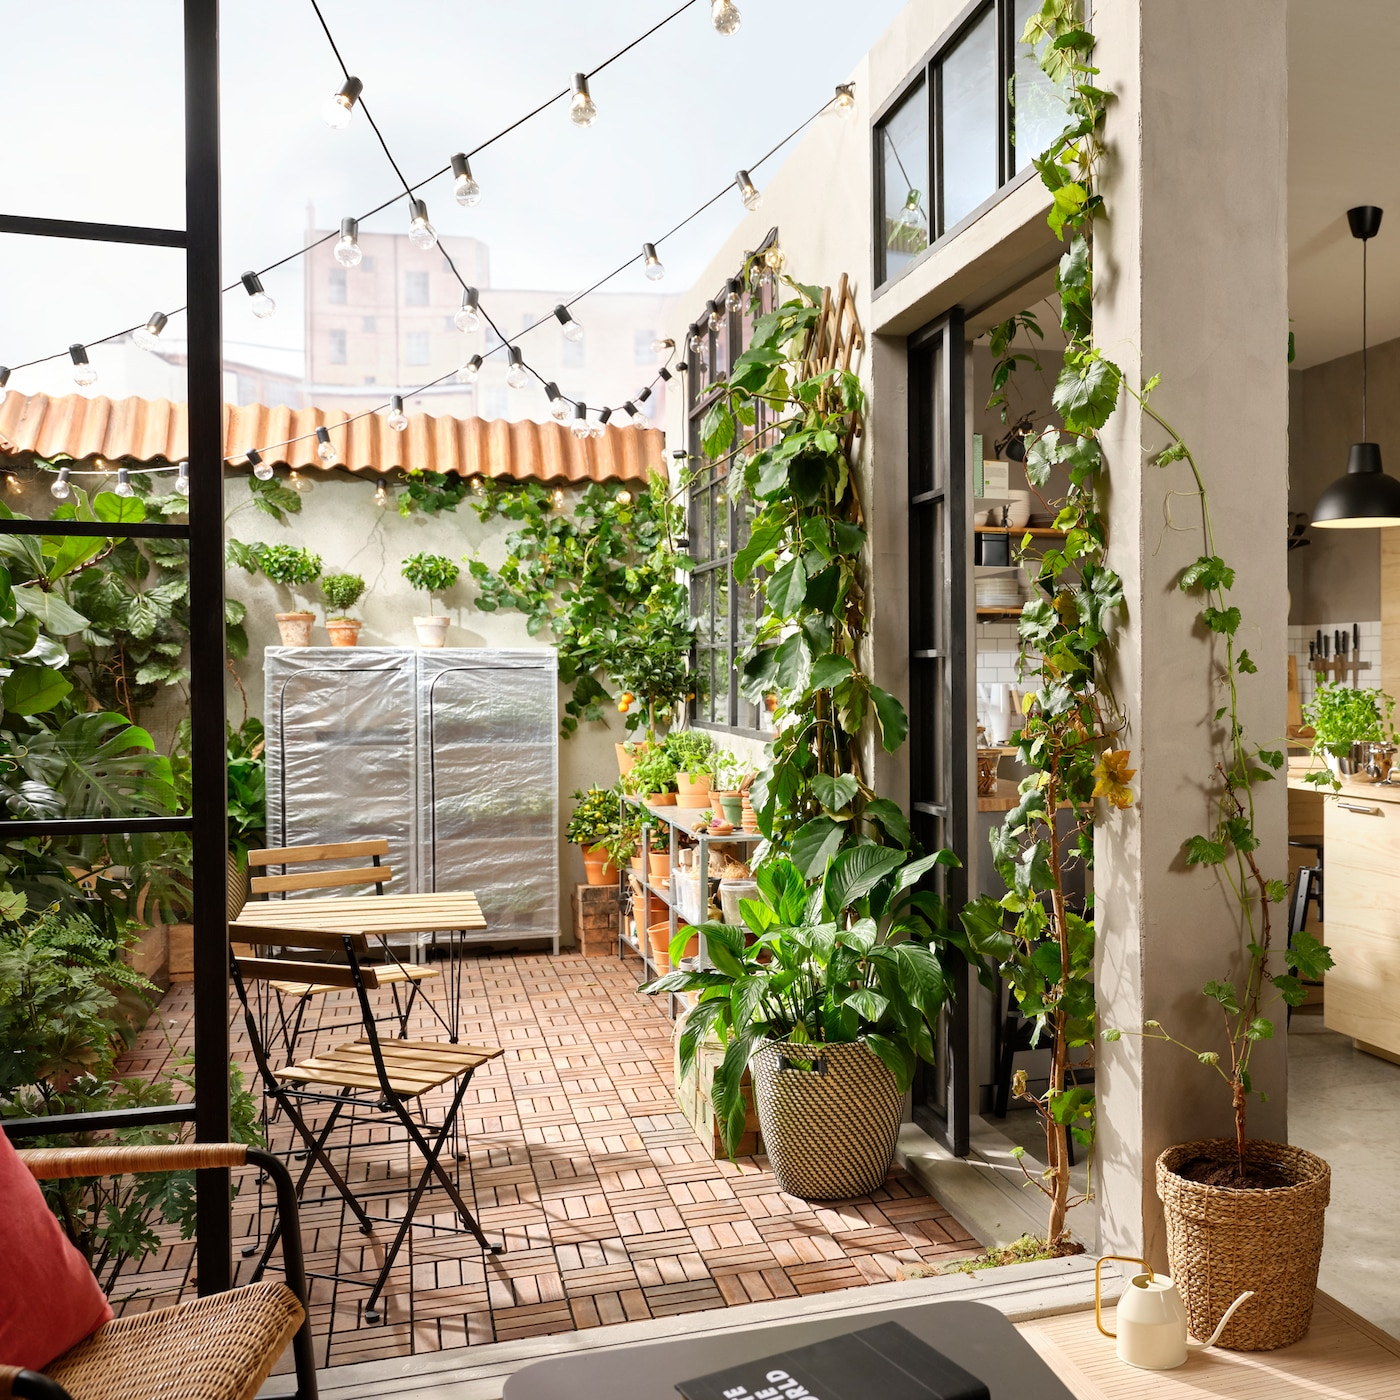 A patio with a wooden floor decking, lots of green plants, hanging LED lighting chains and an outdoor table and two chairs.